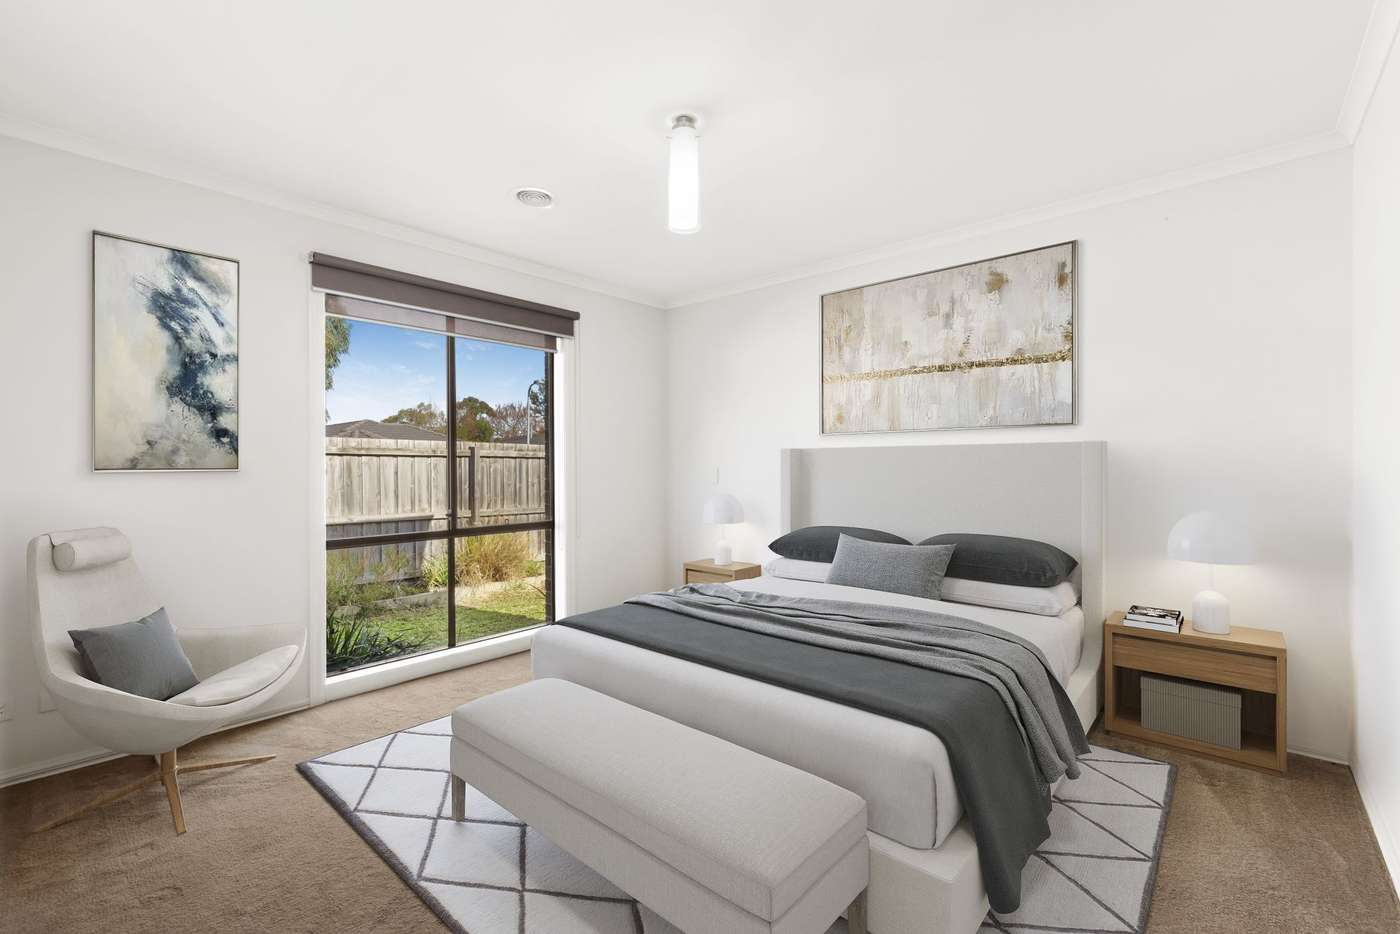 Fifth view of Homely house listing, 1 Swamp Gum Close, Pakenham VIC 3810